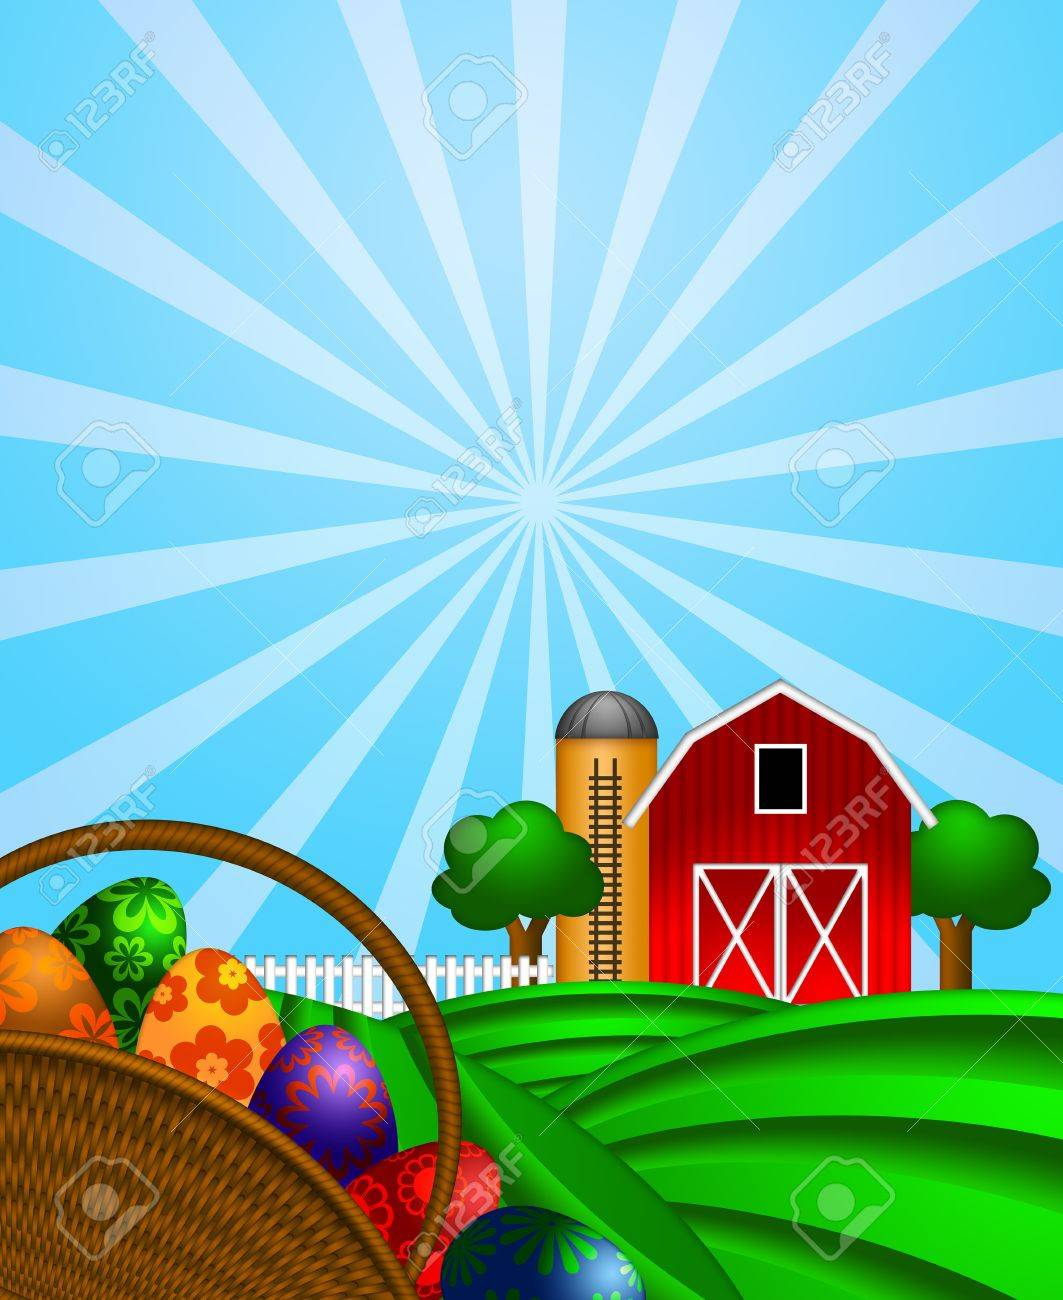 Cow on green pasture with red barn with grain silo royalty free stock - Red Barns On Hill Happy Easter Day Eggs Basket With Red Barn Grain Elevator Silo